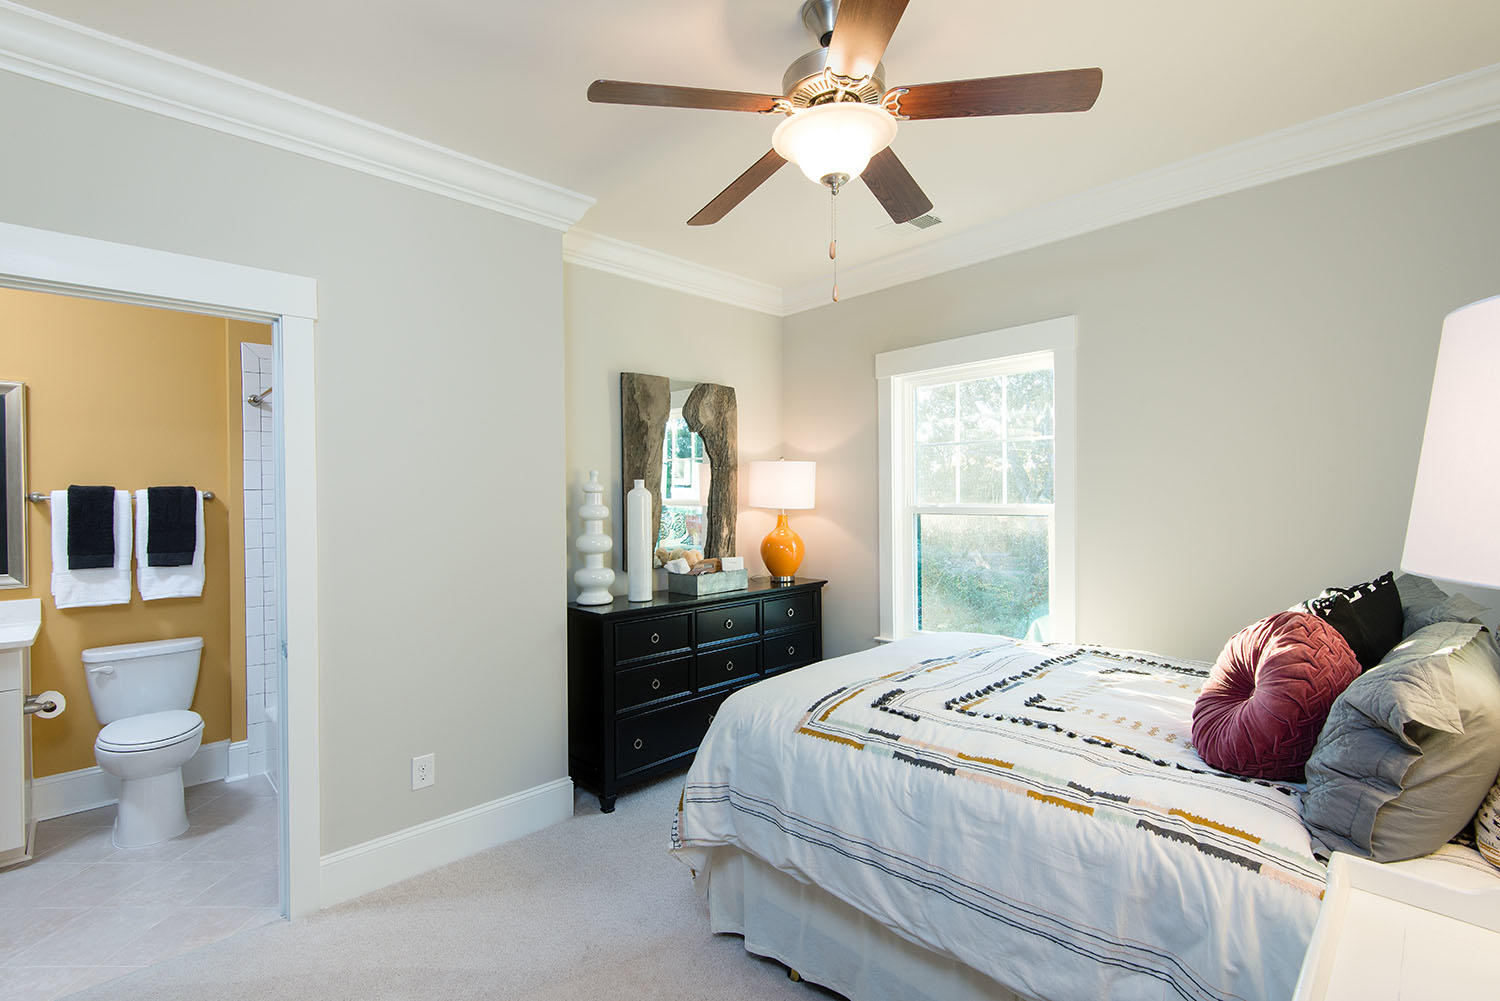 The Village at Stiles Point Homes For Sale - 869 Shutes Folly, Charleston, SC - 6